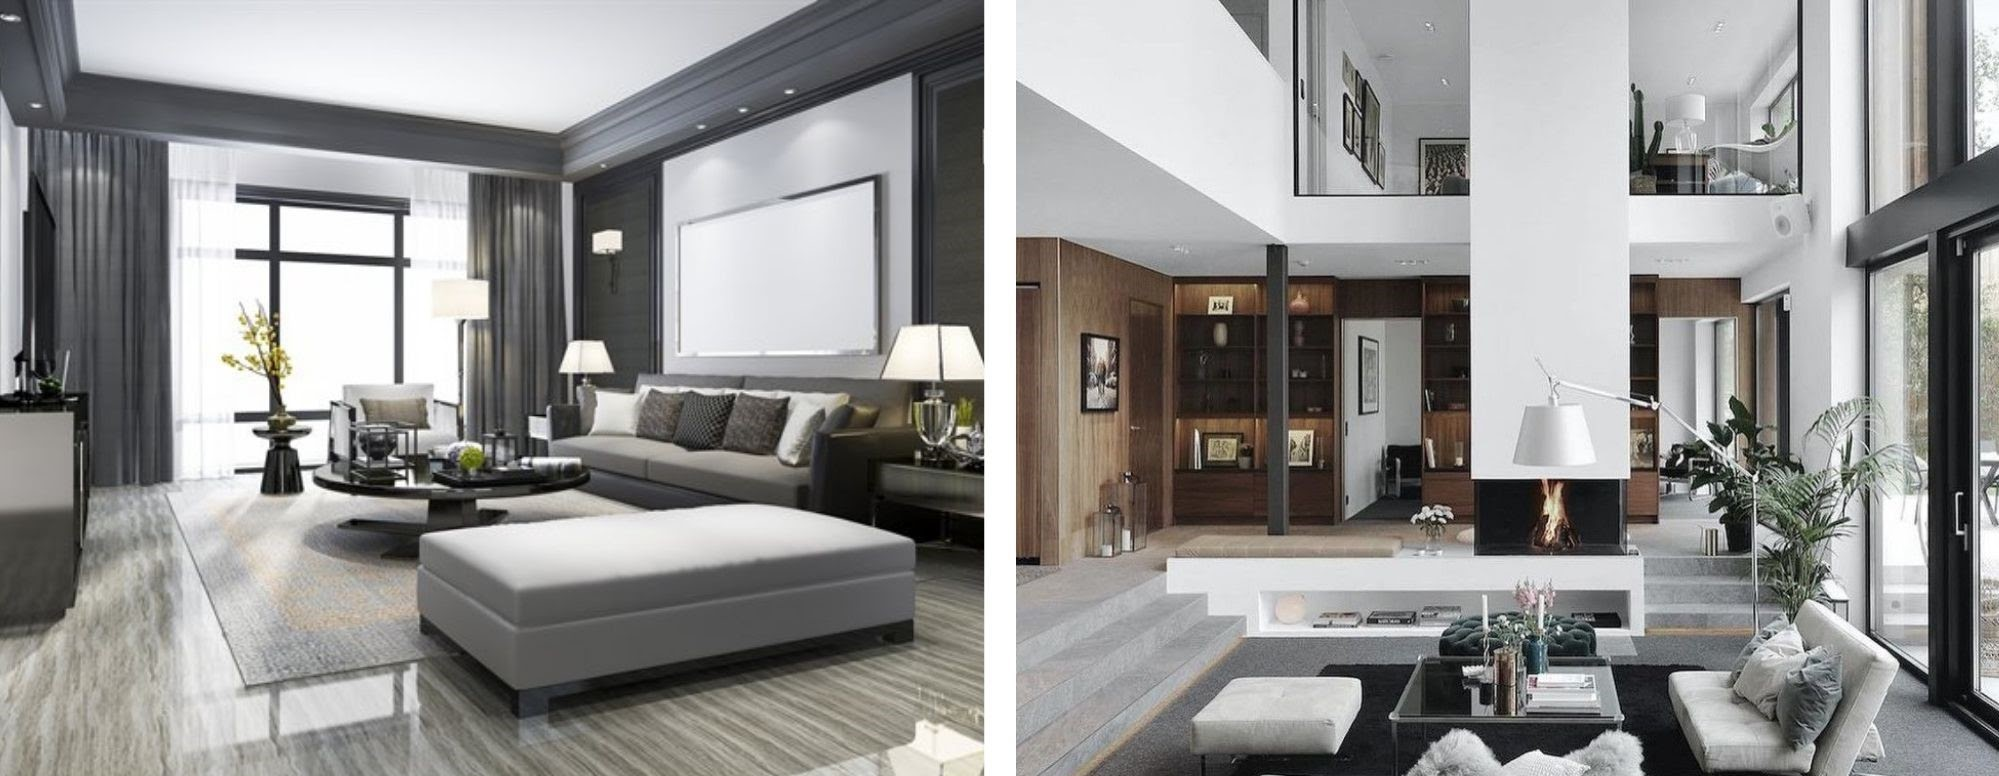 top-modern-home-decor-styles-in-the-world-3